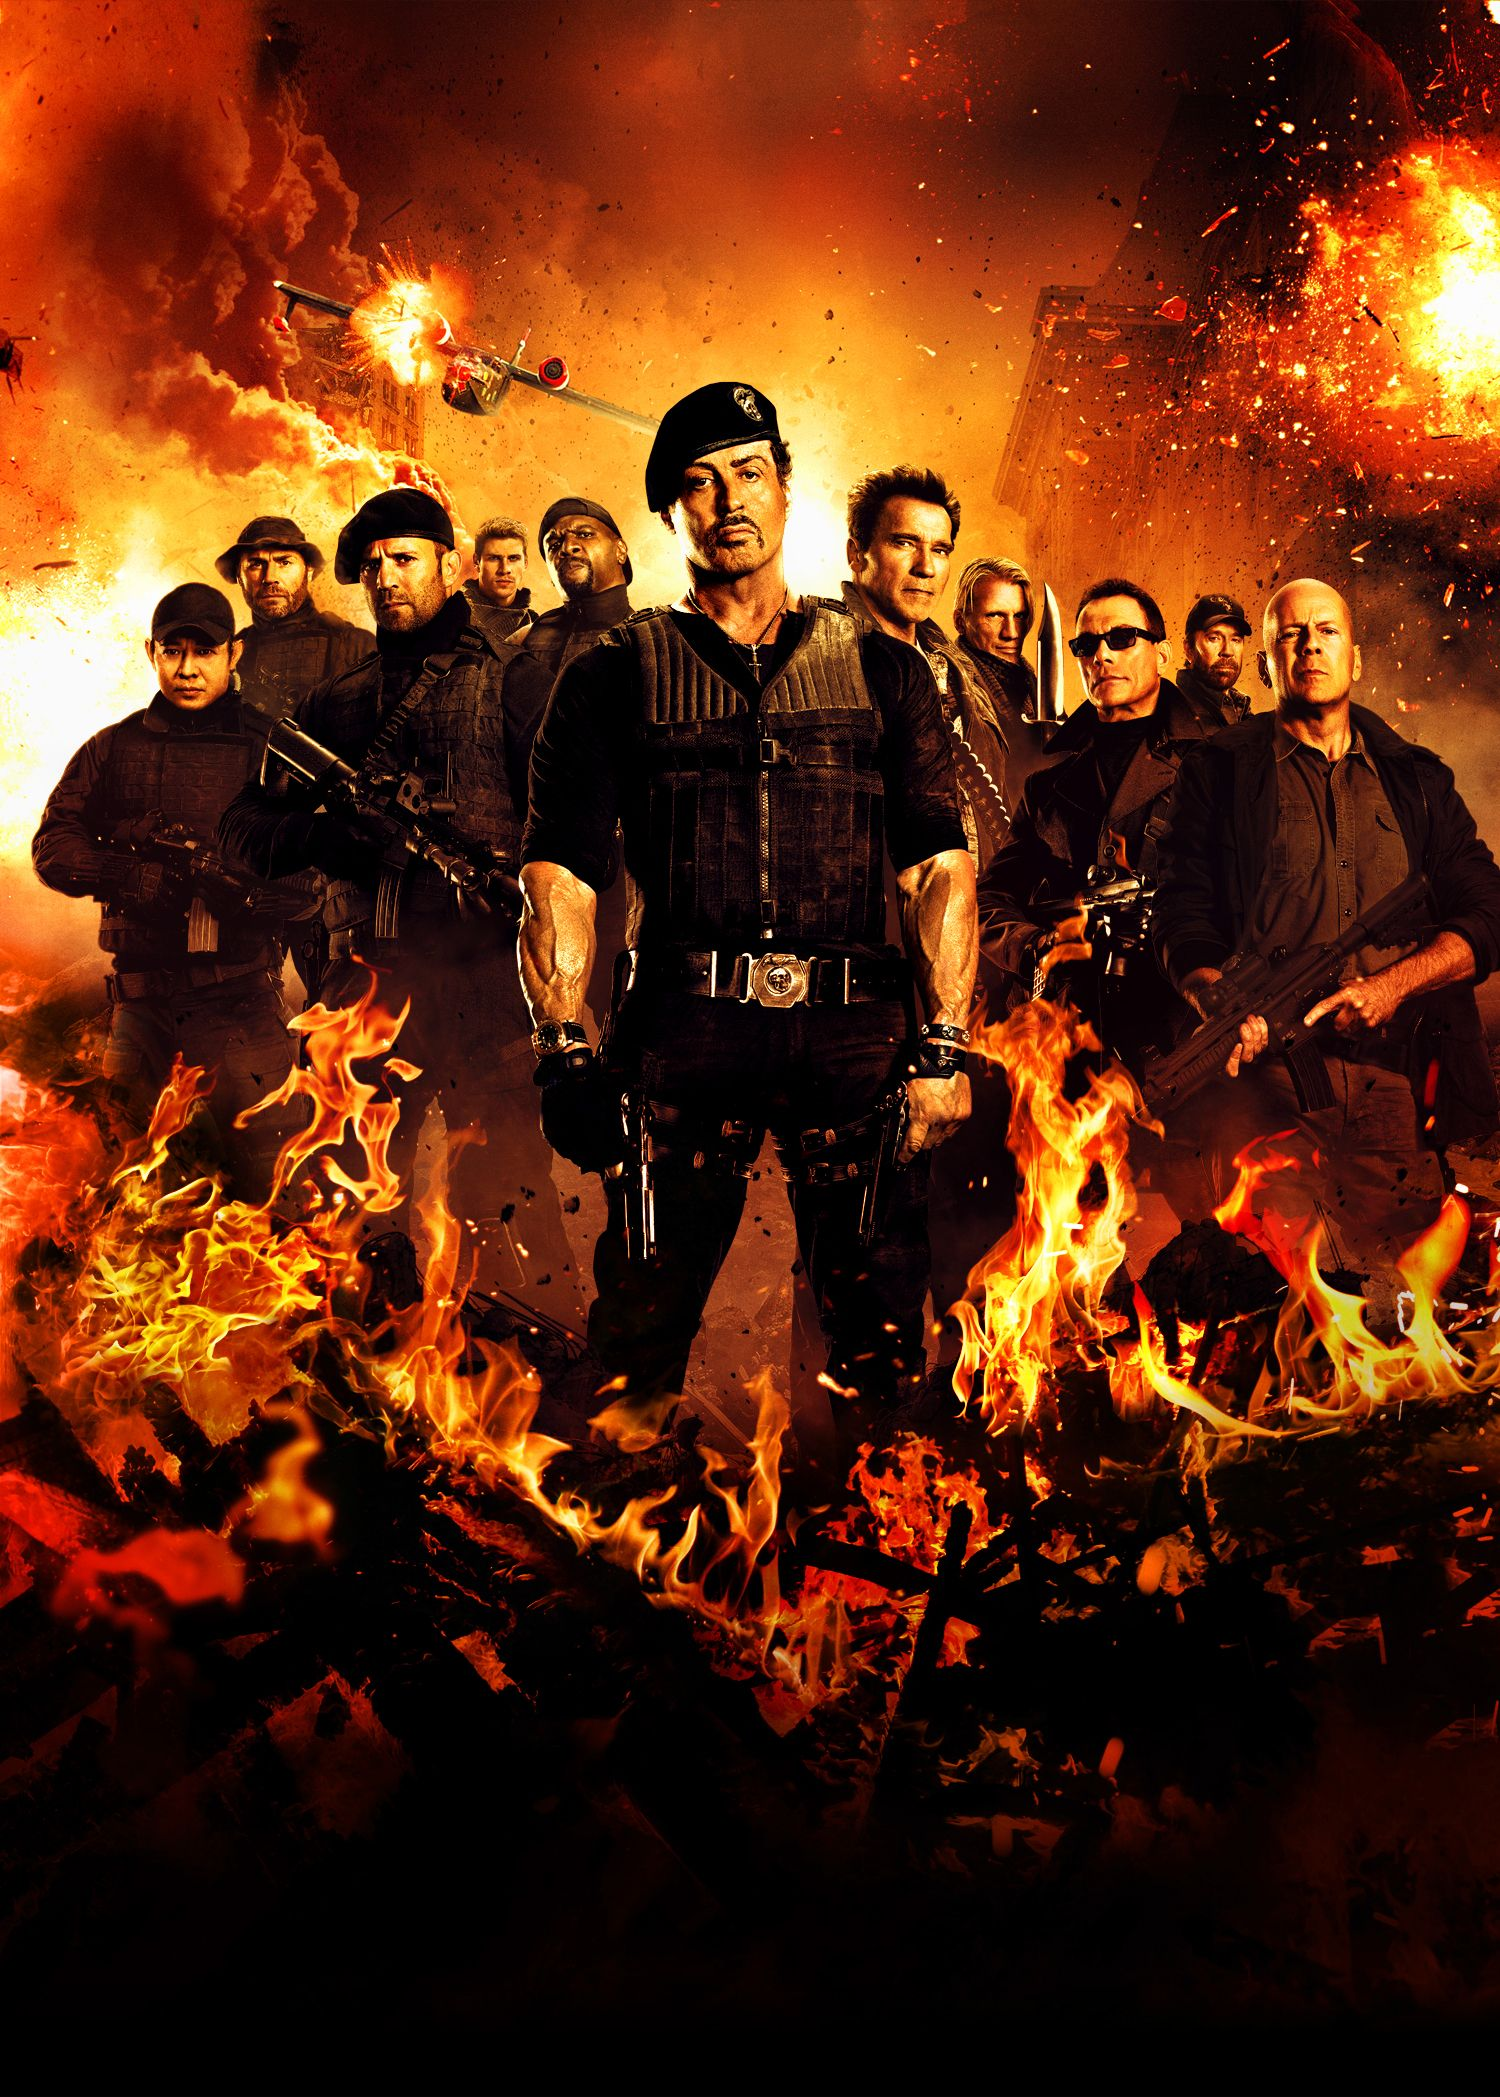 The Expendables 2 2012 The Expendables Claude Van Damme Gute Filme